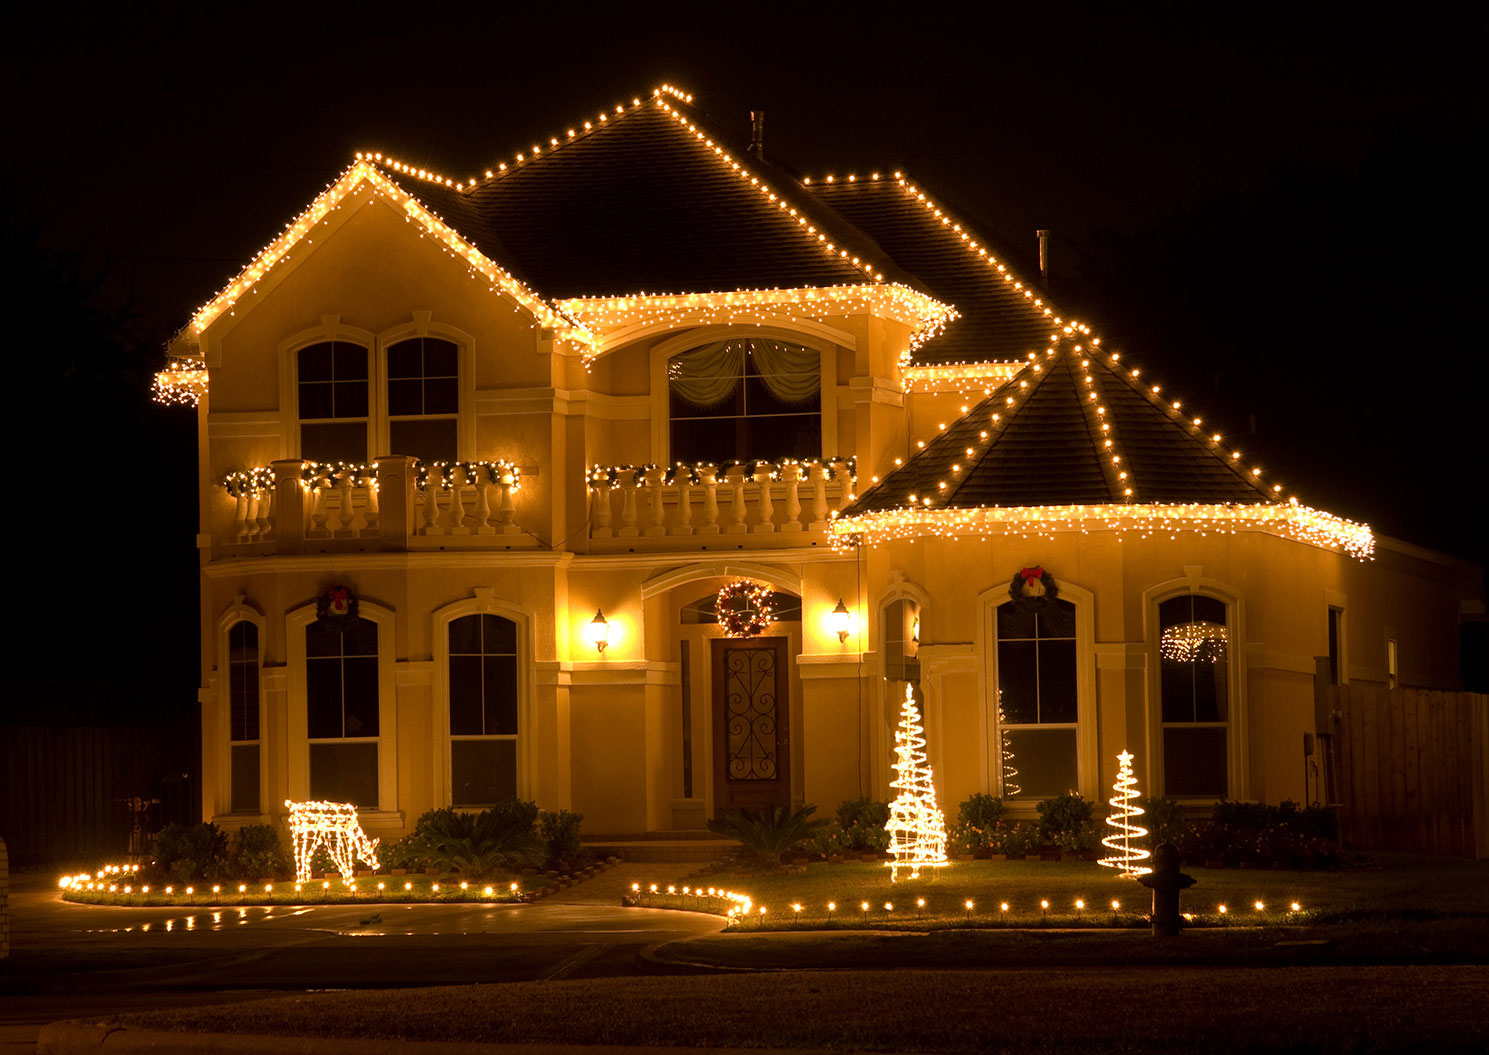 Professional Christmas light installation in Princeton, NJ